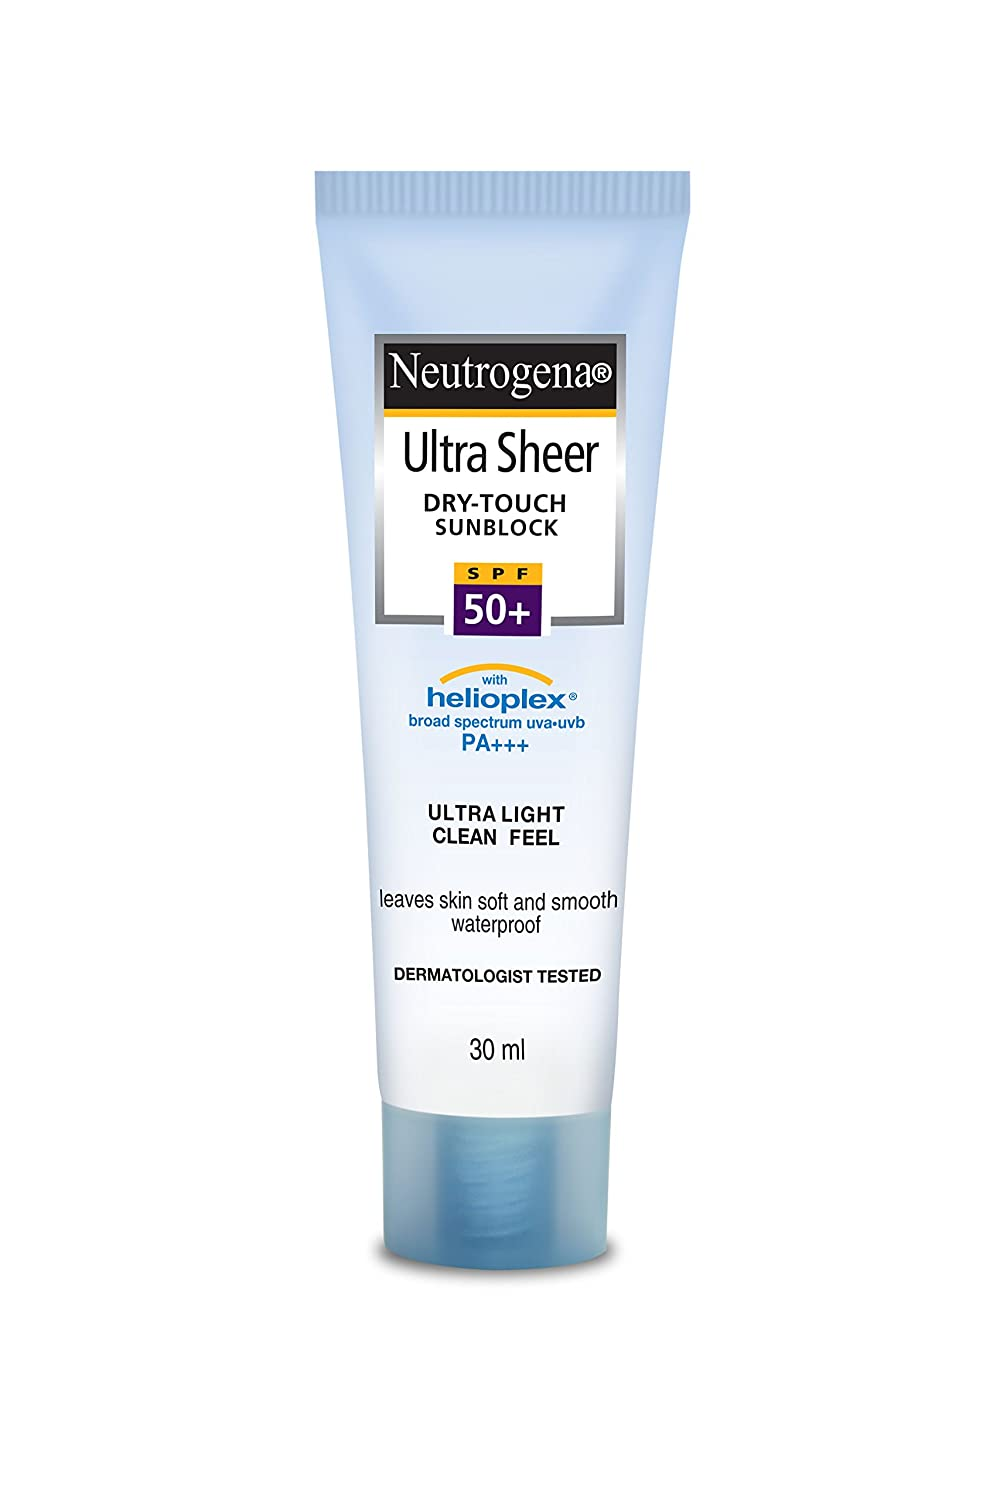 Best Buying Option Top 13 Best Sunscreen For Women And Men In India April 2020 Reviews And Buyer S Guide In 2020 Cream For Dry Skin Neutrogena Face Wash For Men